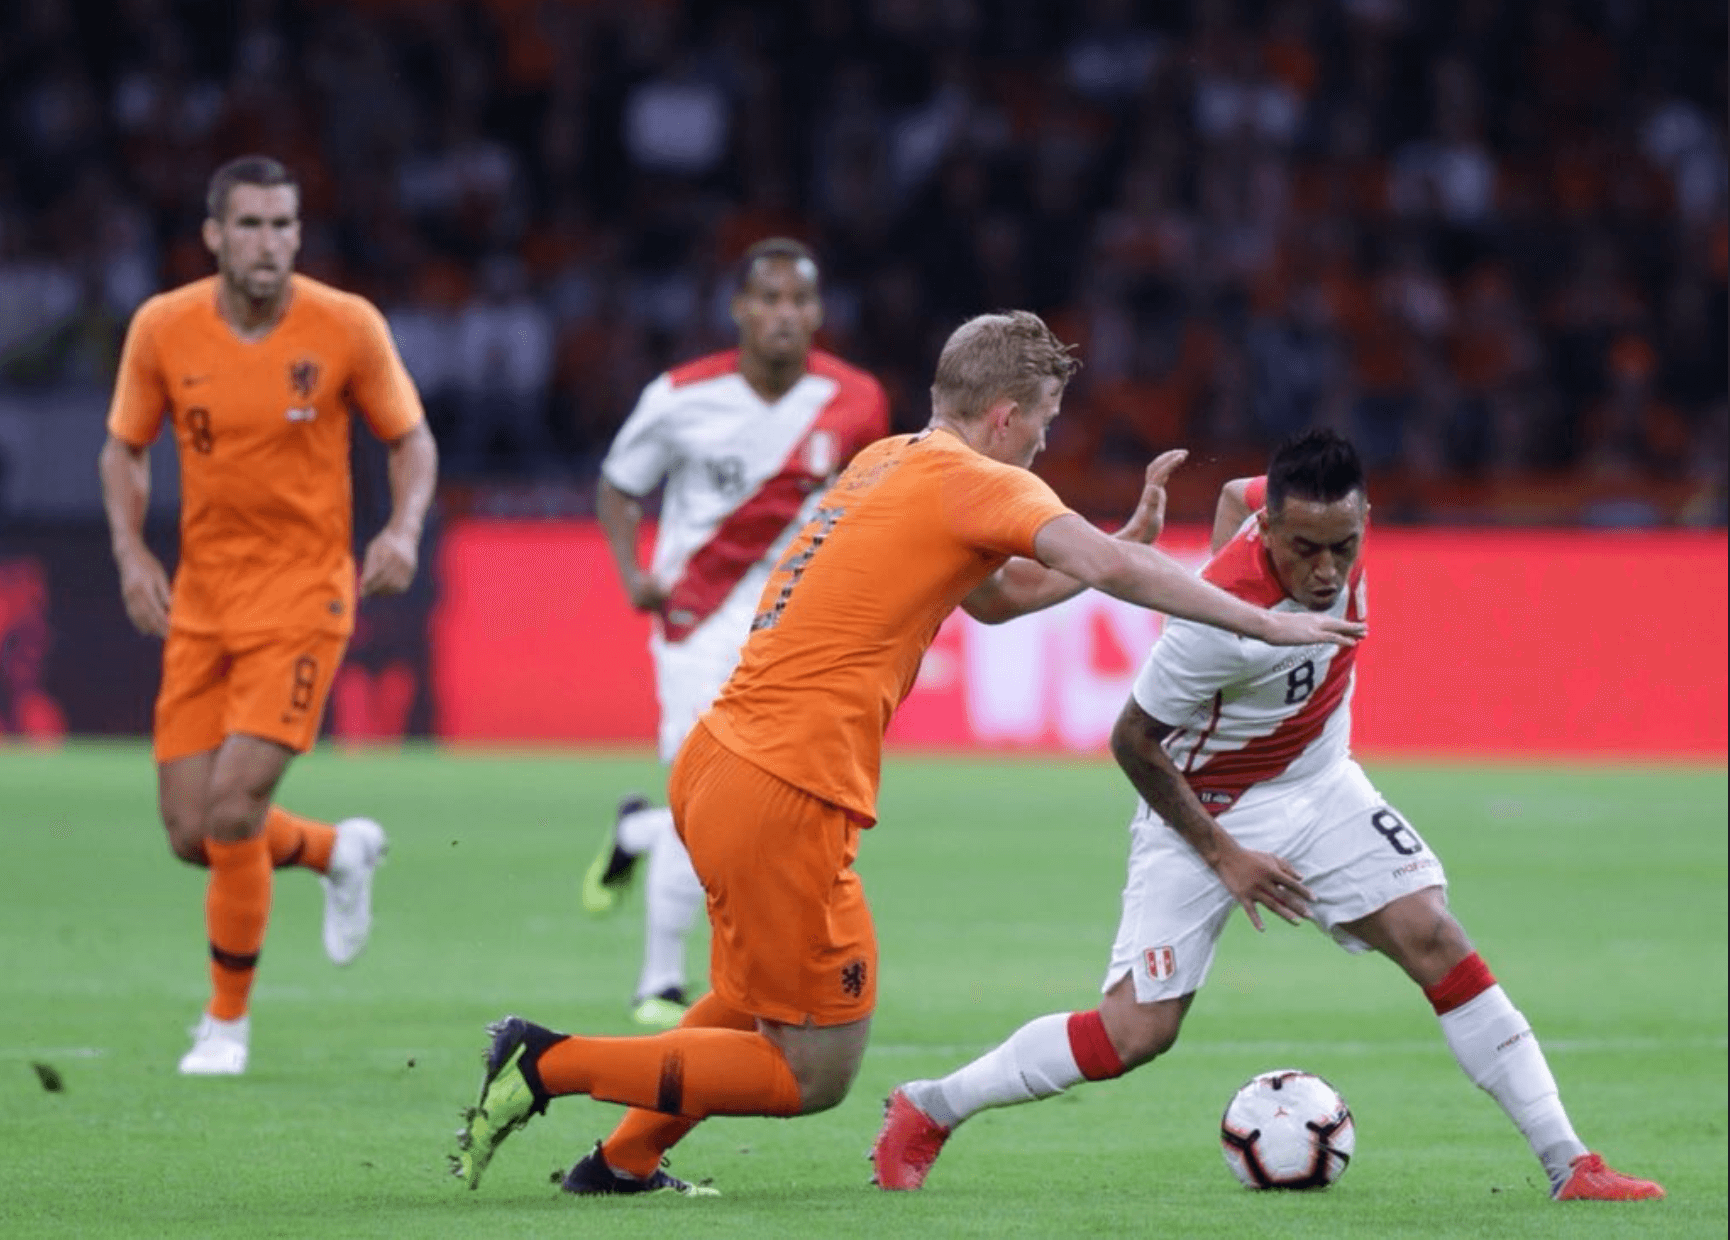 Peru slips up to Holland 2-1 in international friendly